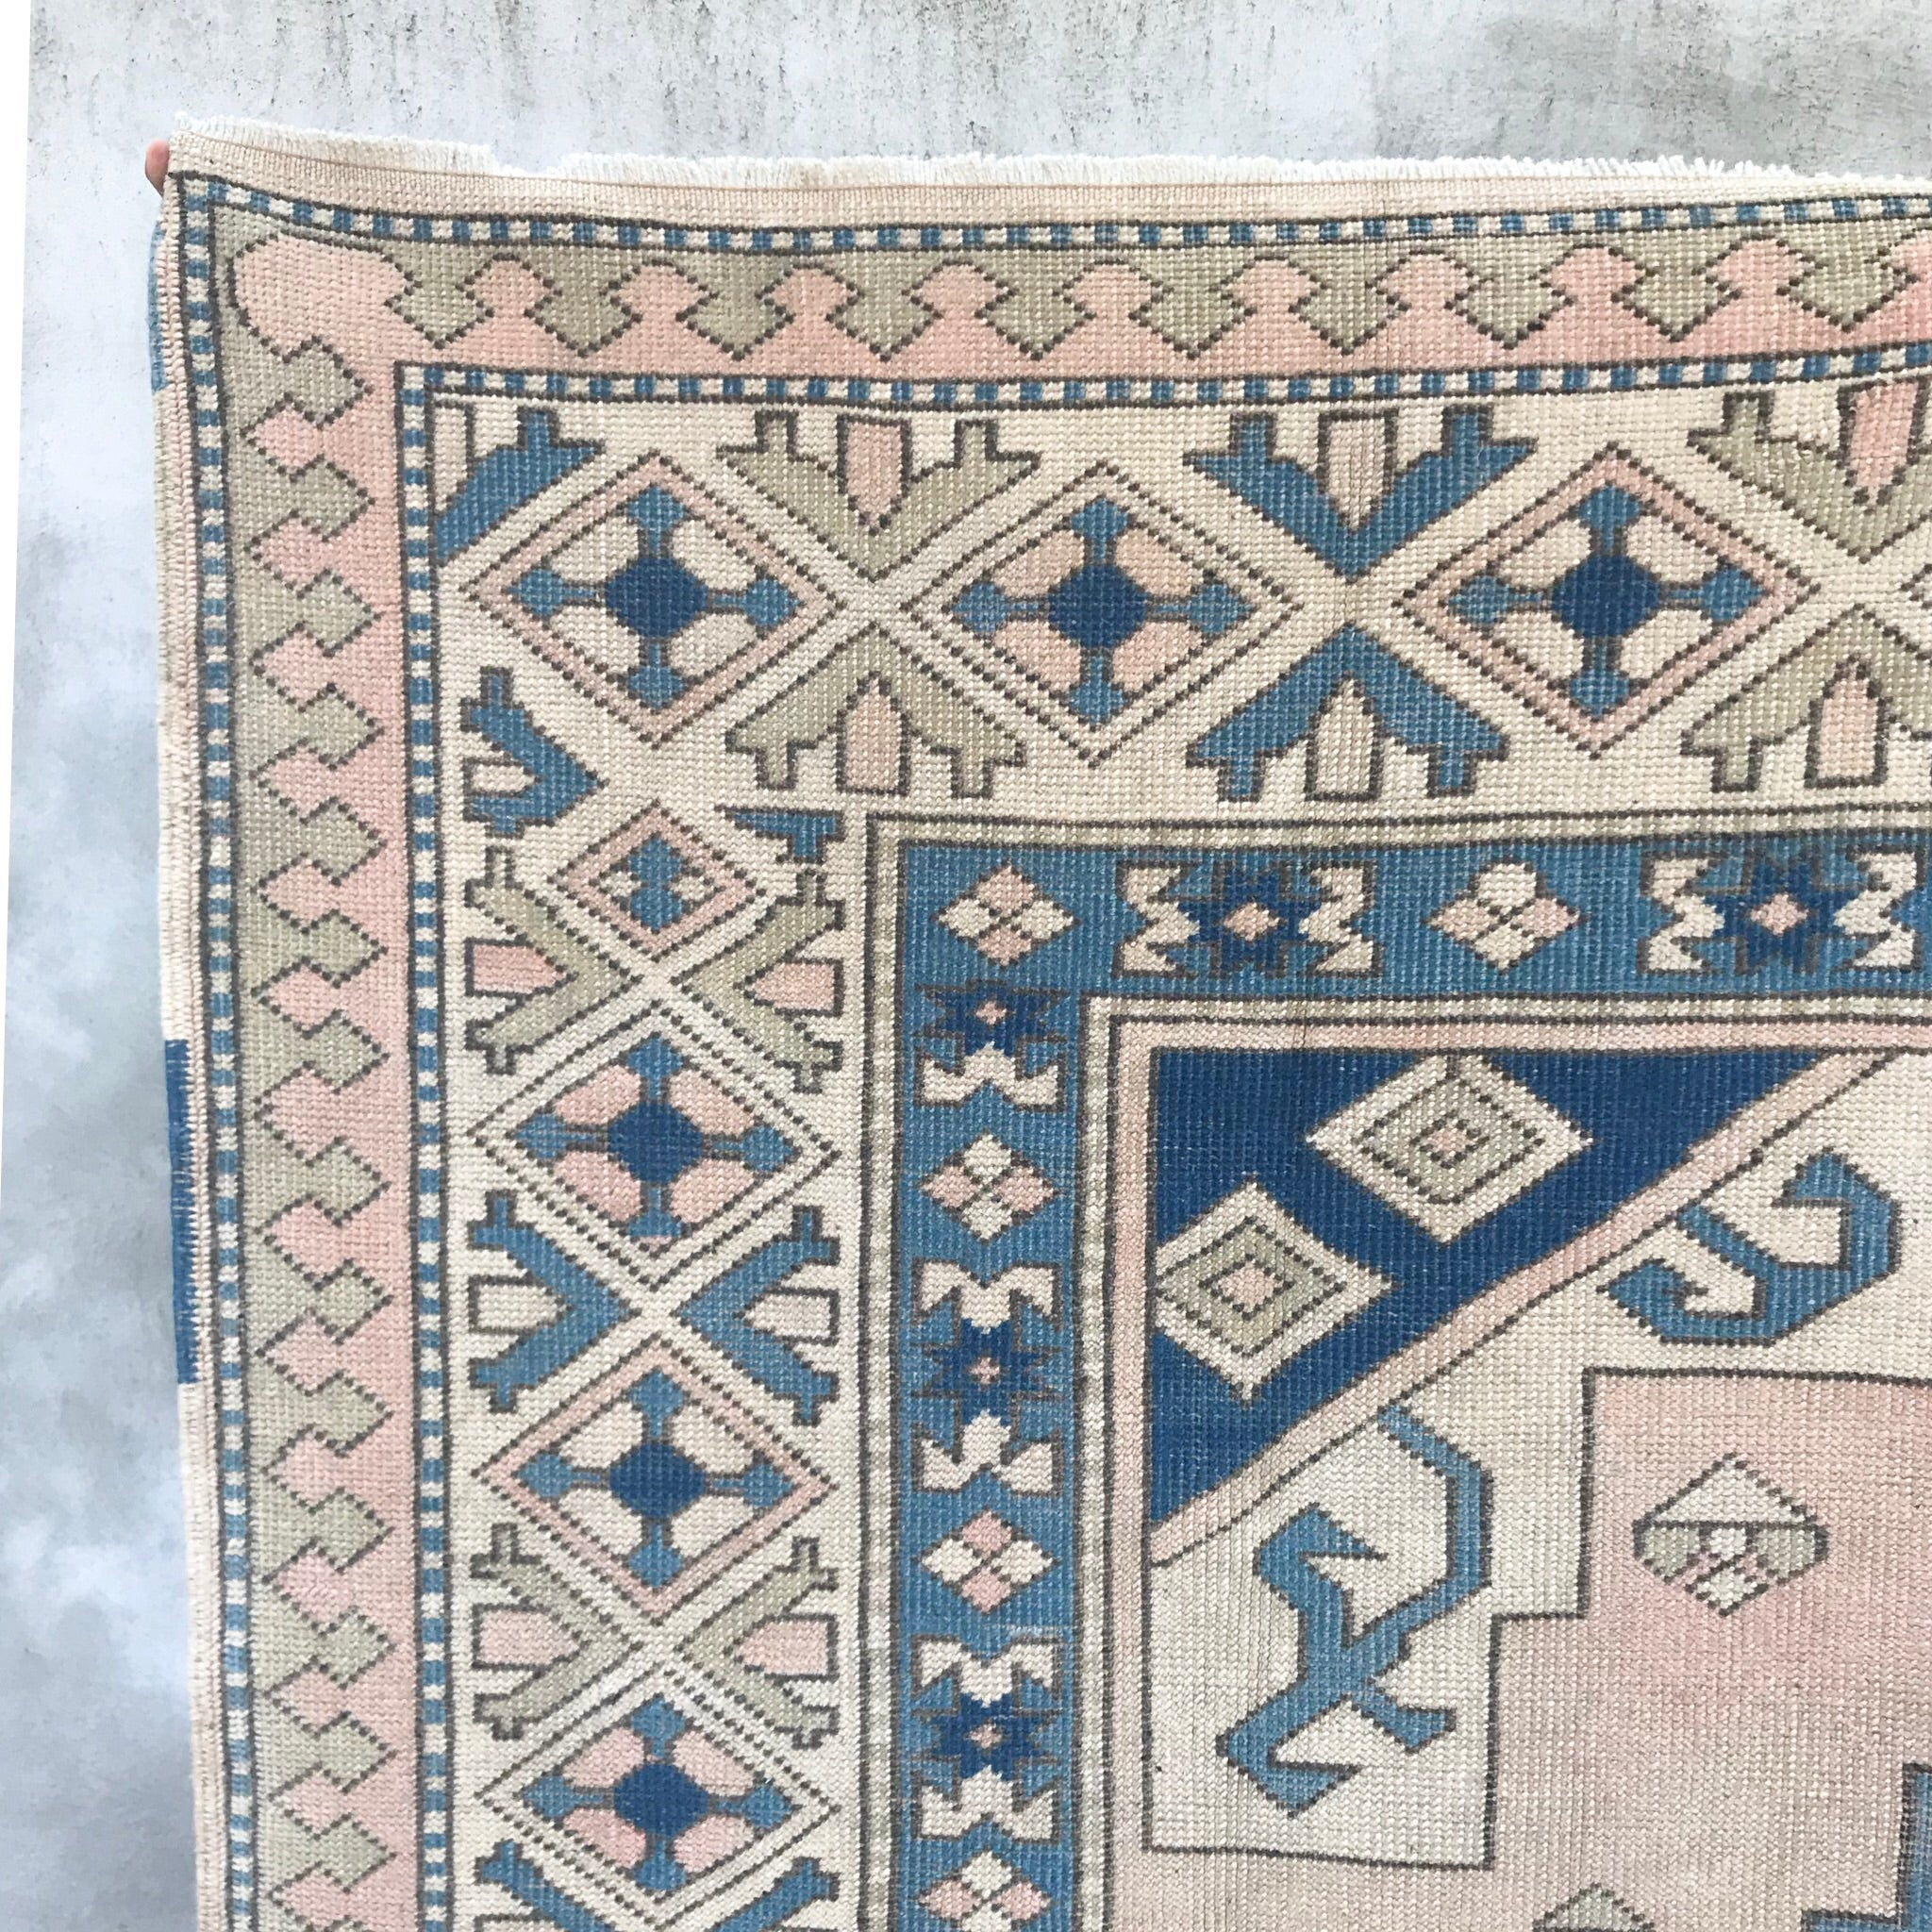 https://zumaimports.com/products/159-5-1x9-3-handwoven-vintage-rug